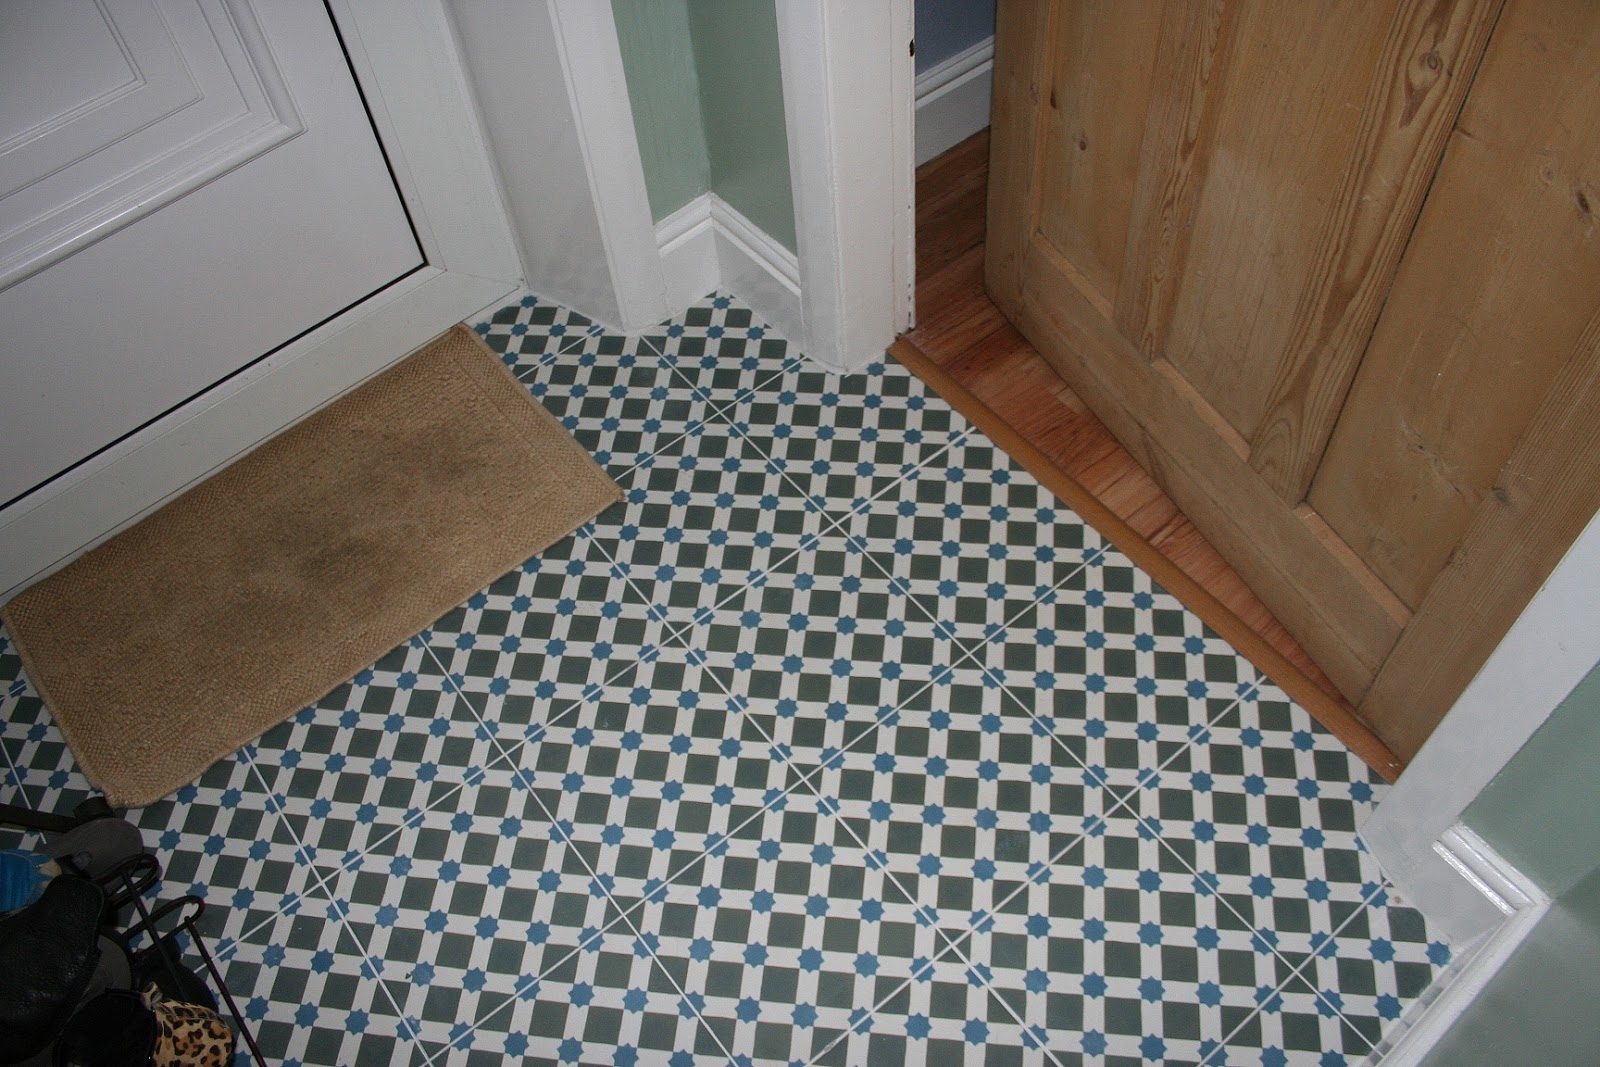 Made Good Things In My Home New Floor Tiles